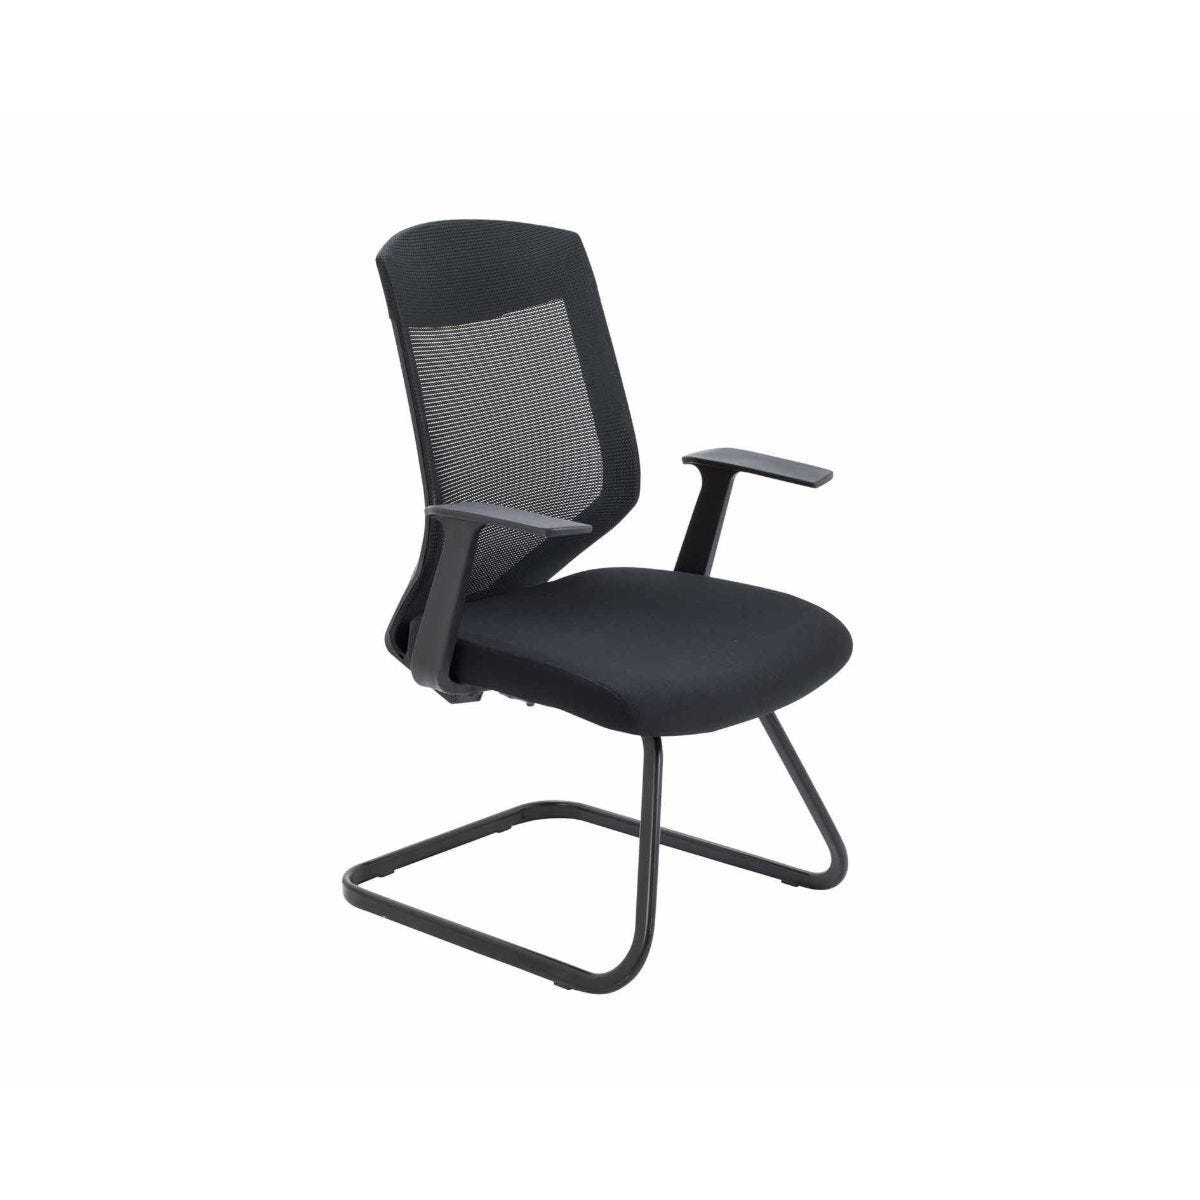 TC Office Vogue Mesh Back Cantilever Meeting Chair with Black Frame